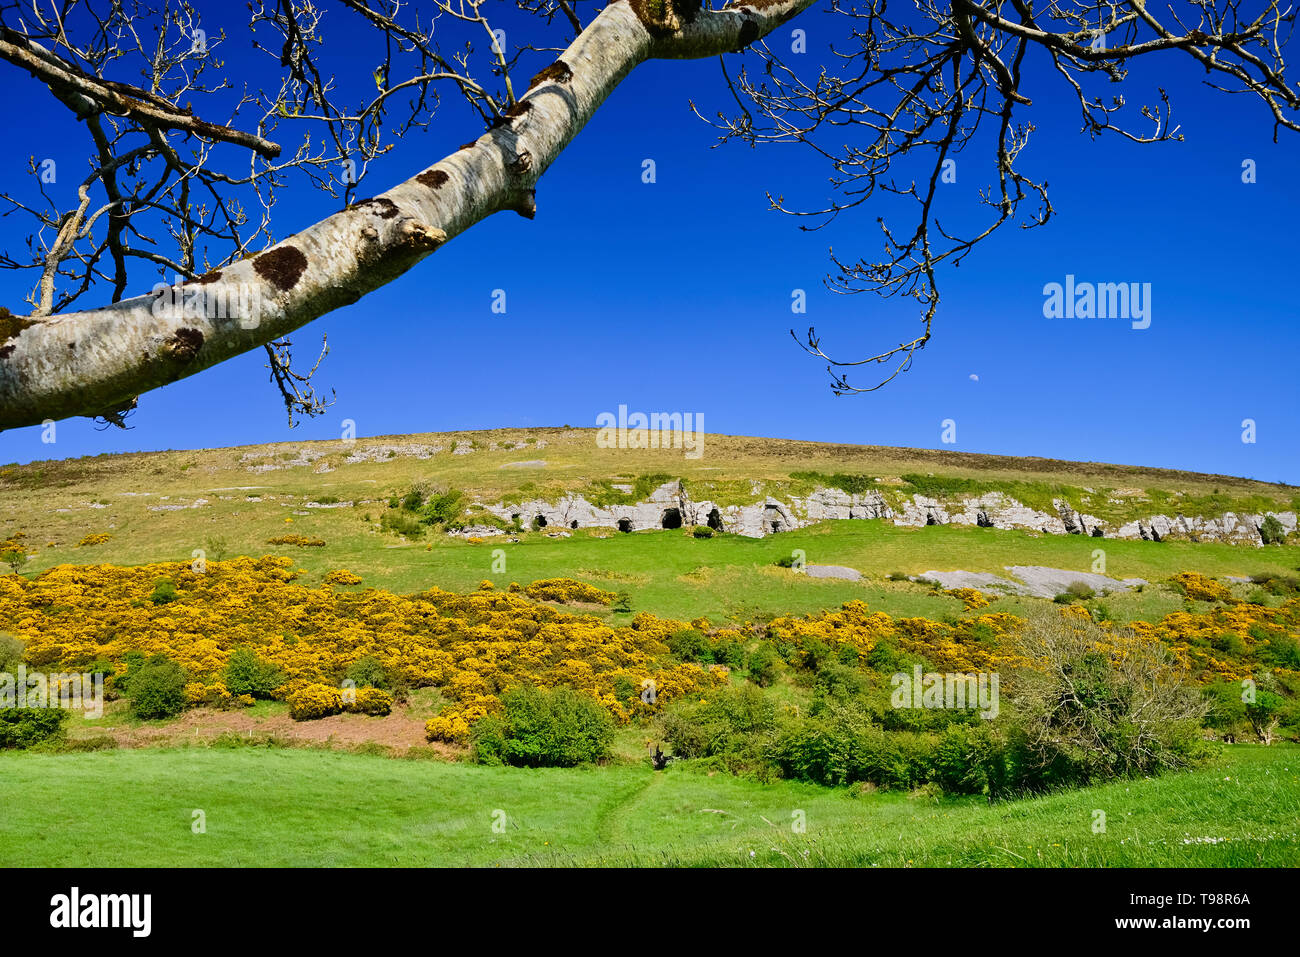 Ireland, County Sligo, Caves of Keash surrounded by fields of  whins or furze. - Stock Image